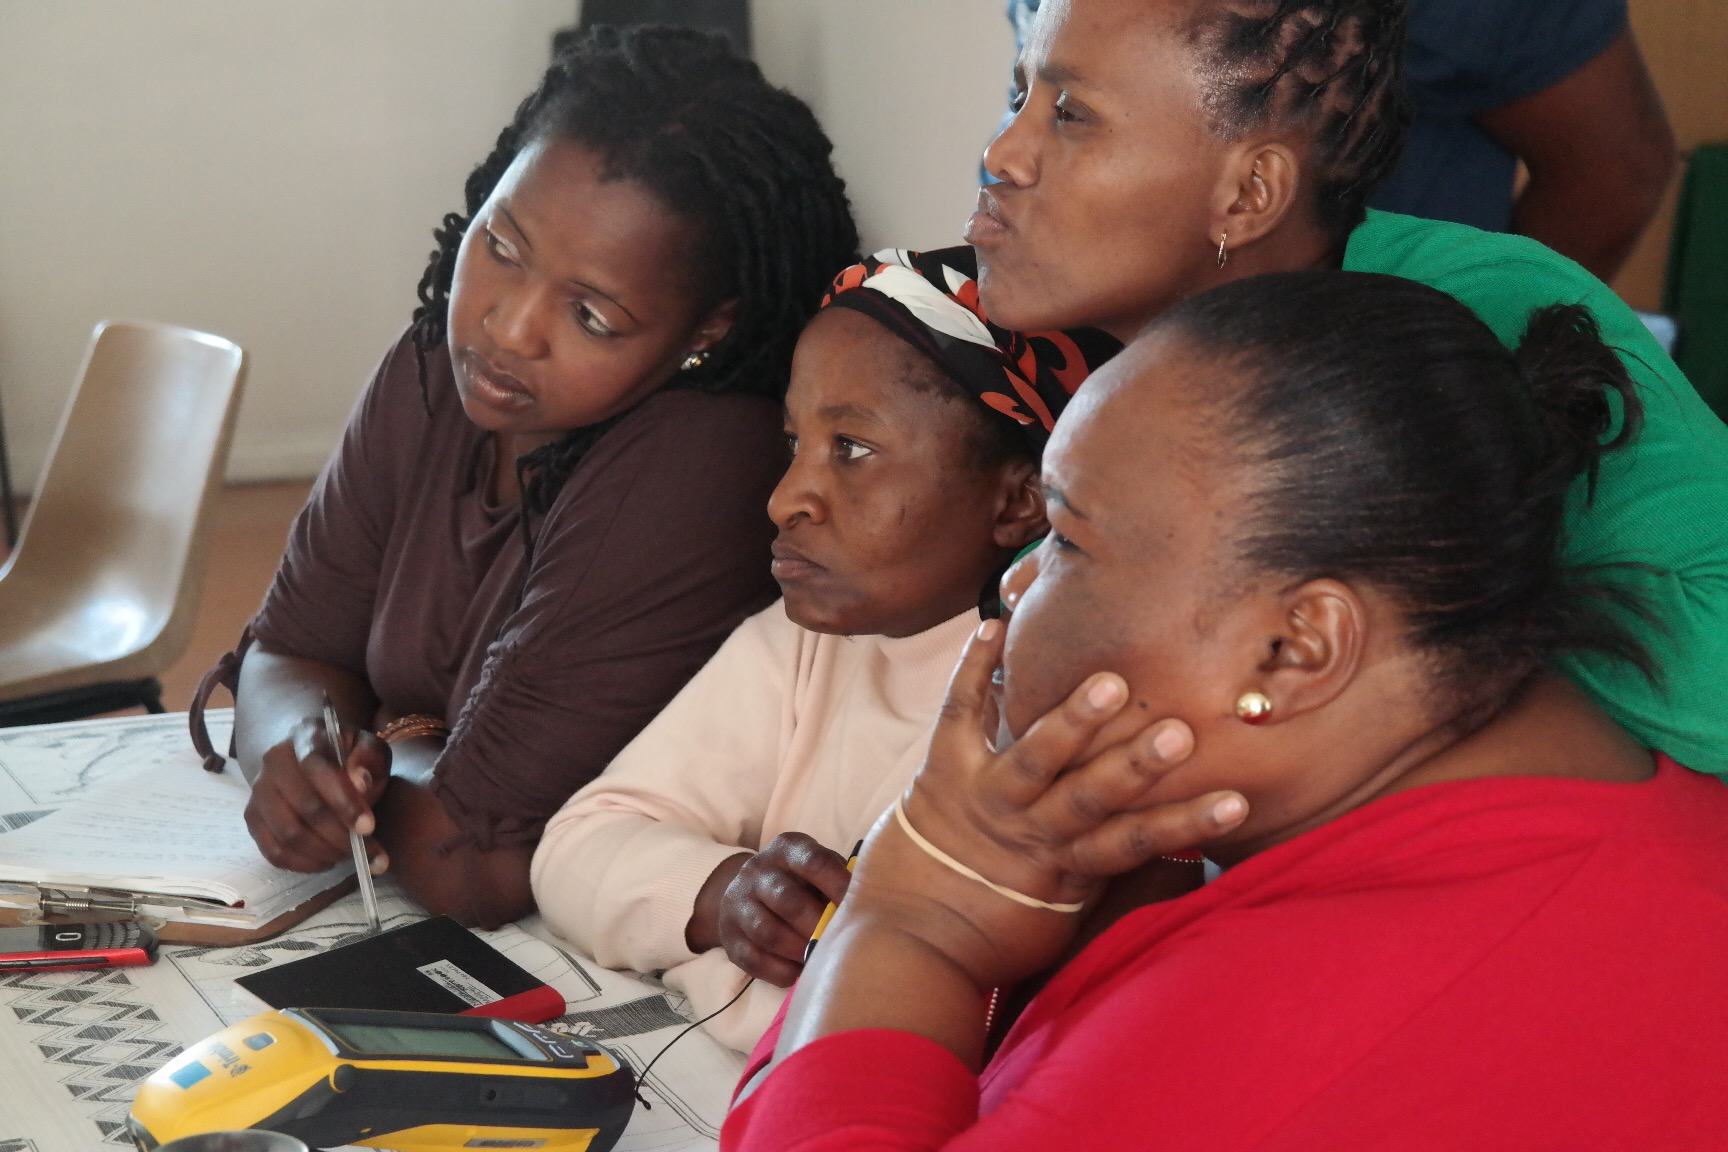 Community enumerators learn the basics of conducting a household-level survey using a data collection device called the Trimble during an enumerations training workshop.